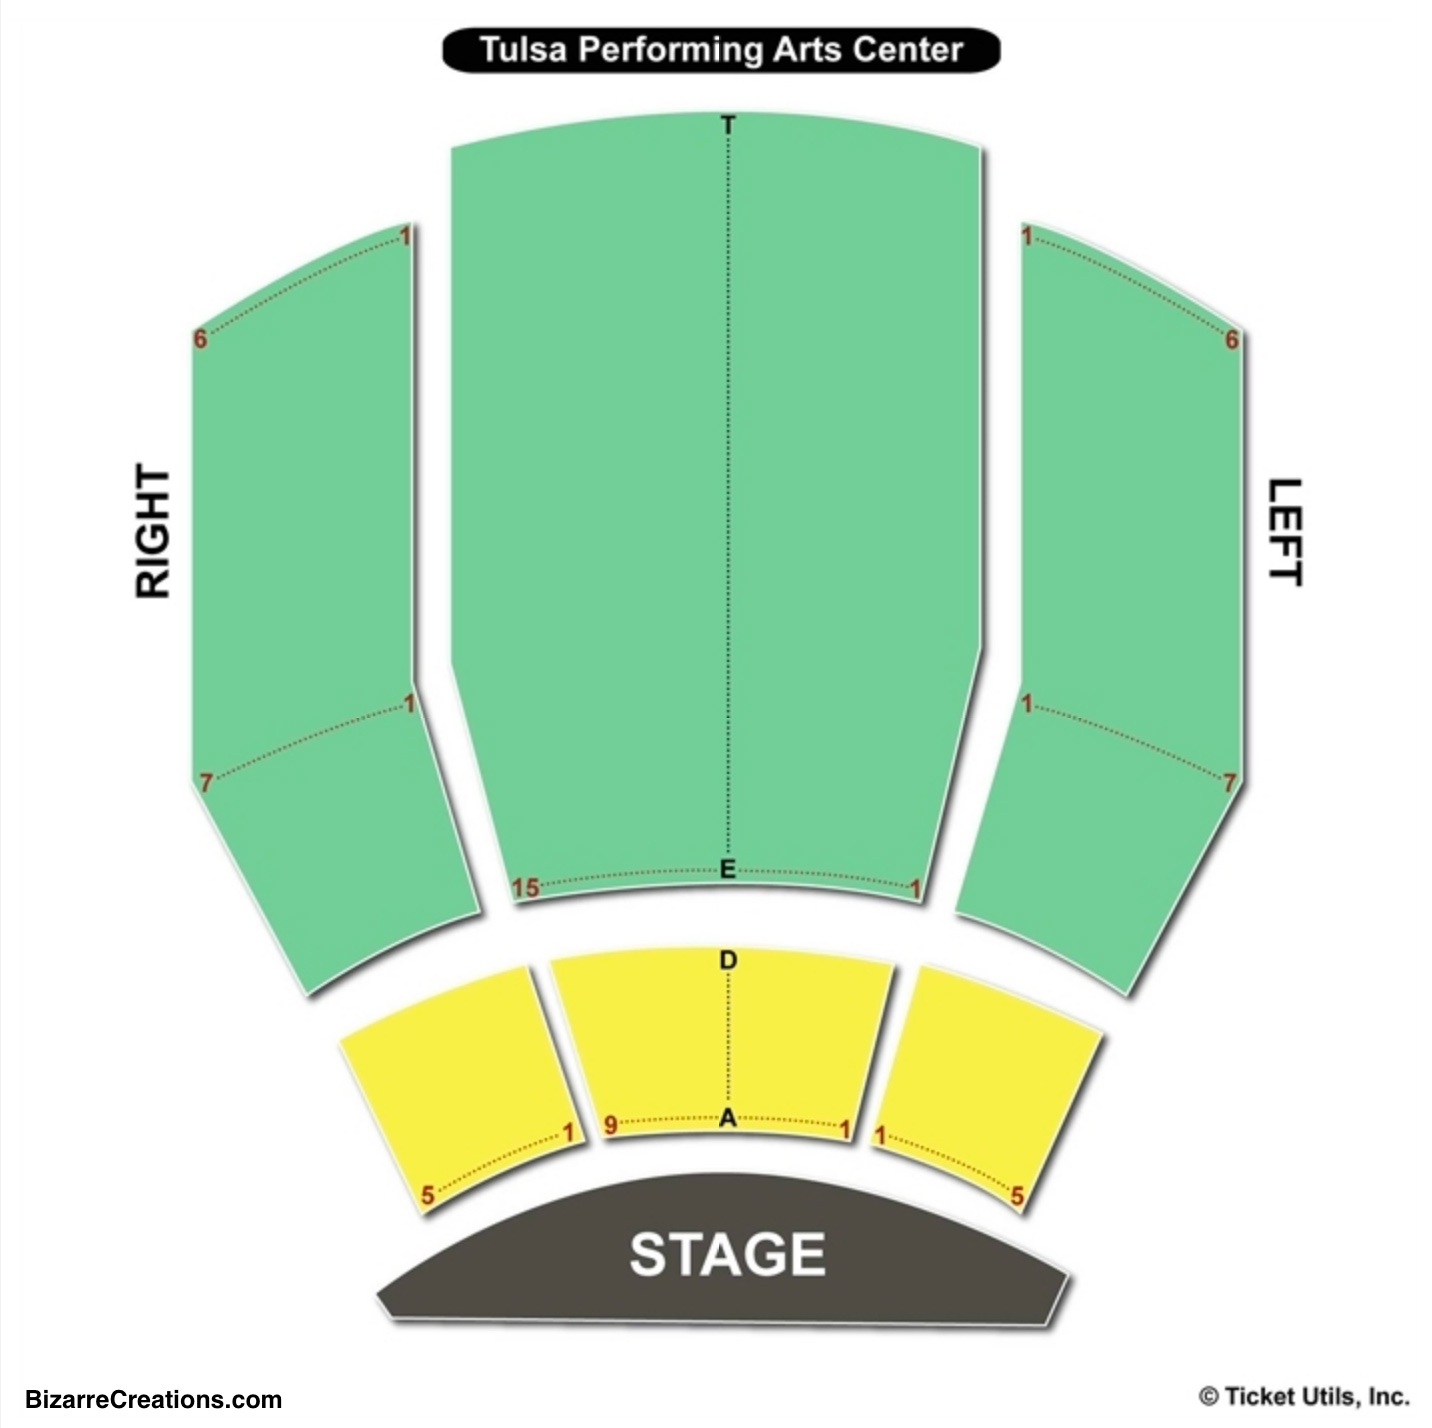 Tulsa Performing Arts Center Seating Chart Broadway Tickets National